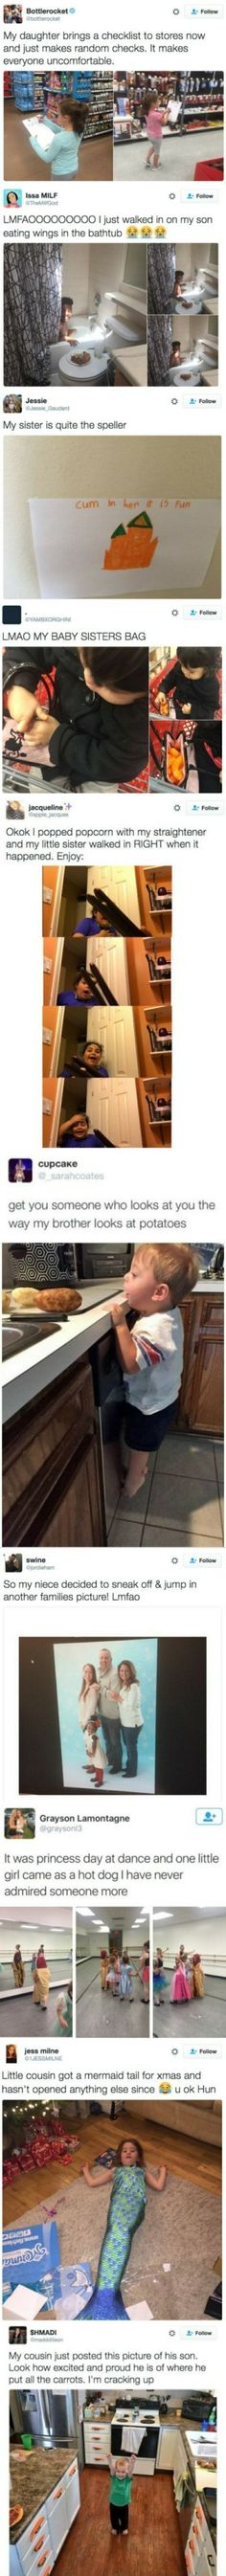 funny Texts, funny Tumblr, funny Fails, Funny Relationship, Funny Stuff, Funny Animals, Funny Things, Funny Messages, Funny Videos, Funny Snapchat, Funny Kids, Funny Cats, Funny Shirts, Funny Pranks, Funny Anime, Funny Dogs, Funny Wedding, Funny Valentine #funnydogs